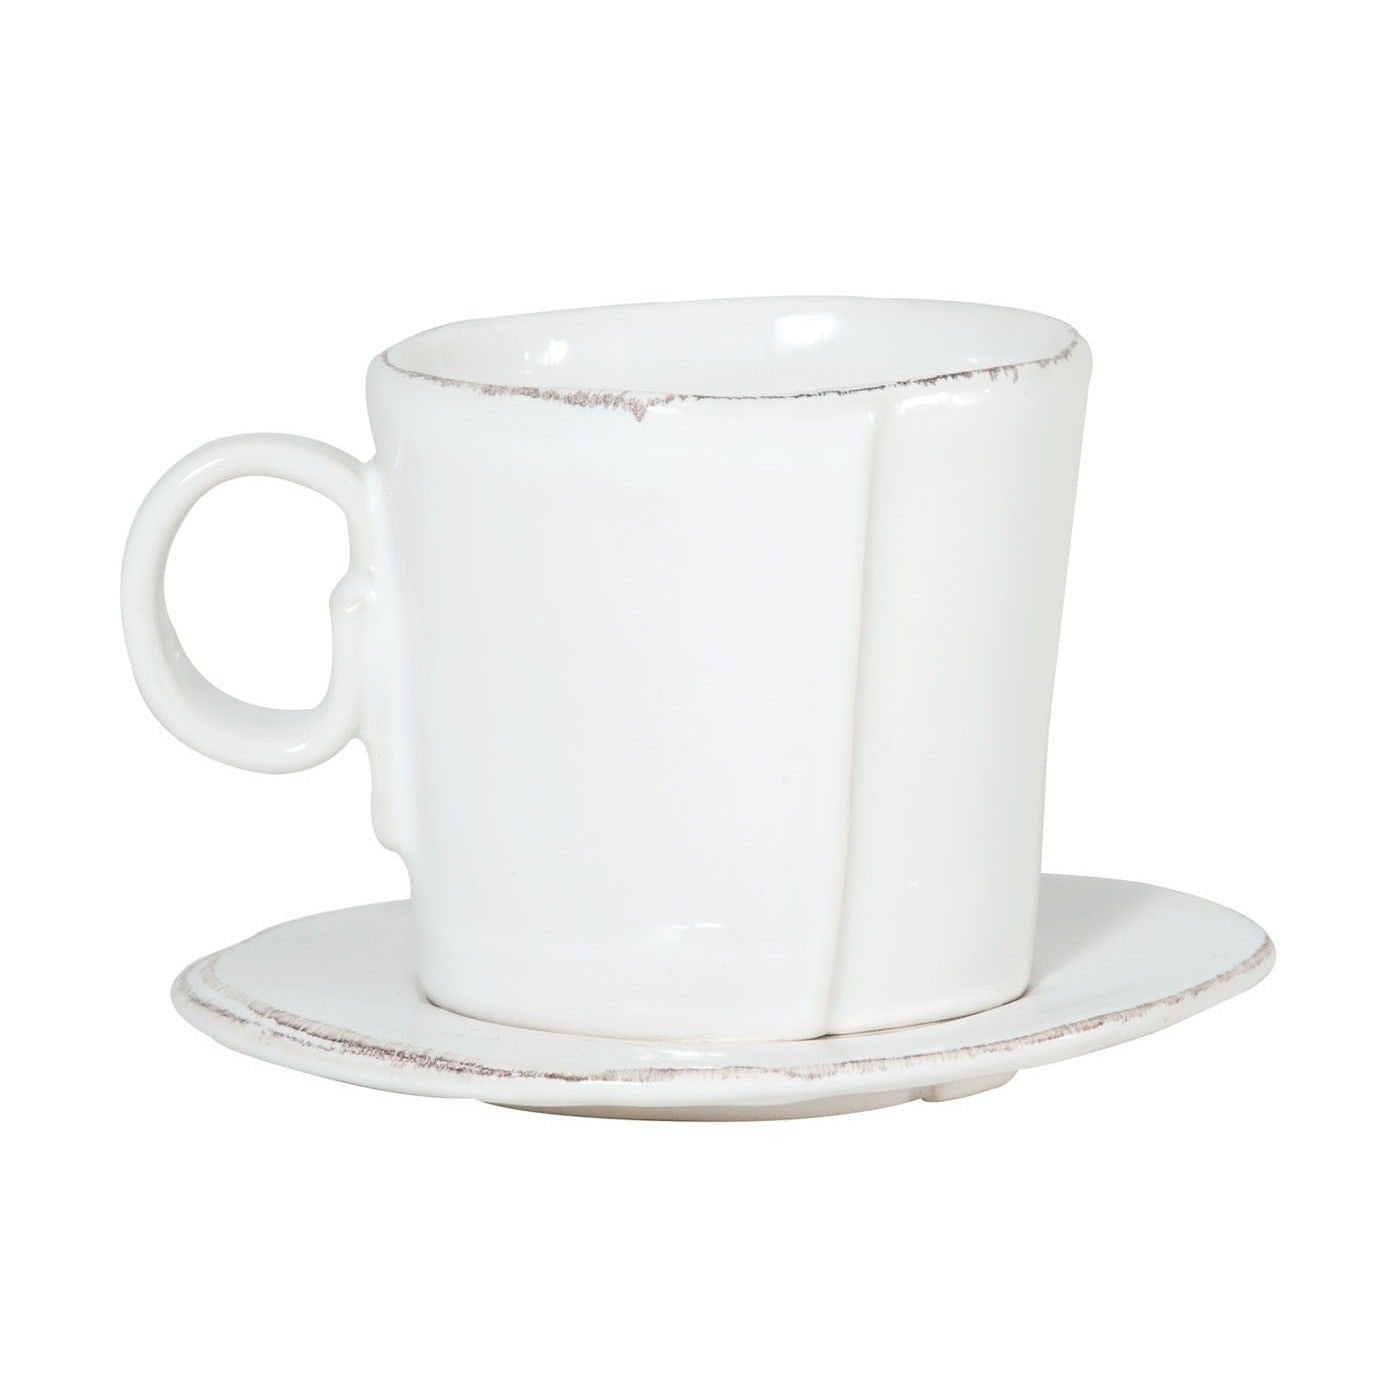 Lastra White Espresso Cup And Saucer